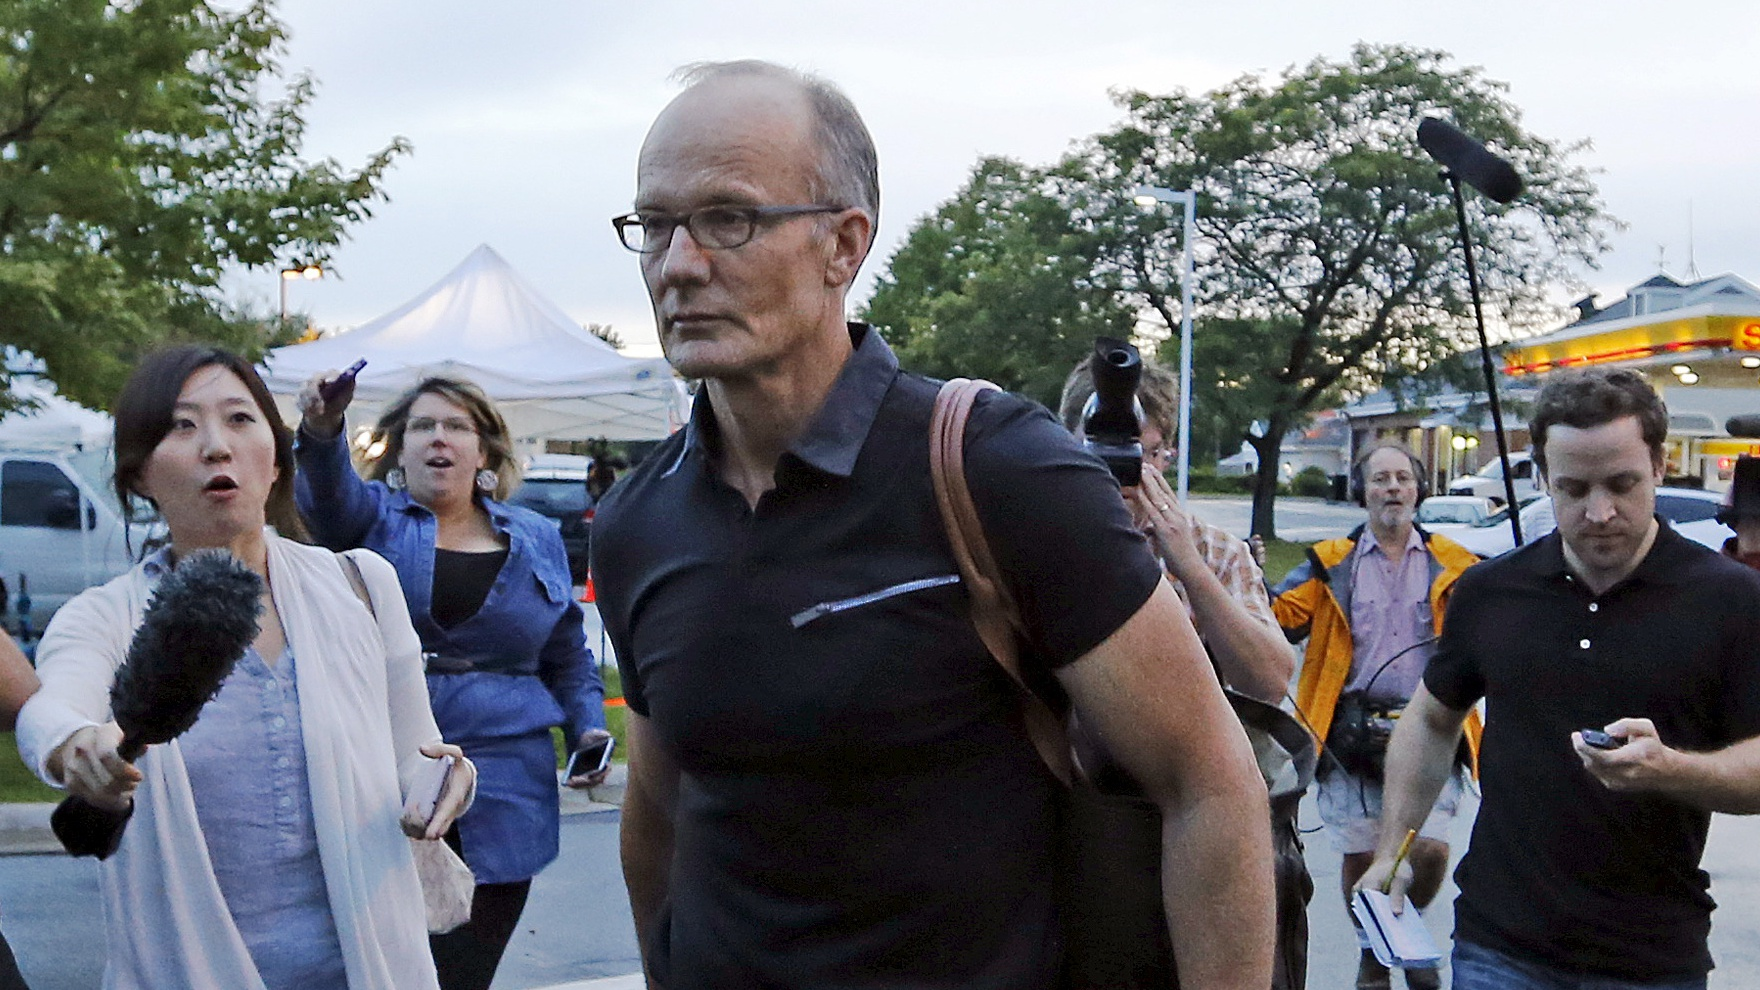 Walter Palmer arrives at the River Bluff Dental clinic in Bloomington, Minnesota, September 8, 2015. Palmer shut his dental practice in July amid a firestorm of protests after he was identified publicly as the big game hunter who had killed the rare black-maned lion, Cecil, a popular tourist attraction in Zimbabwe.